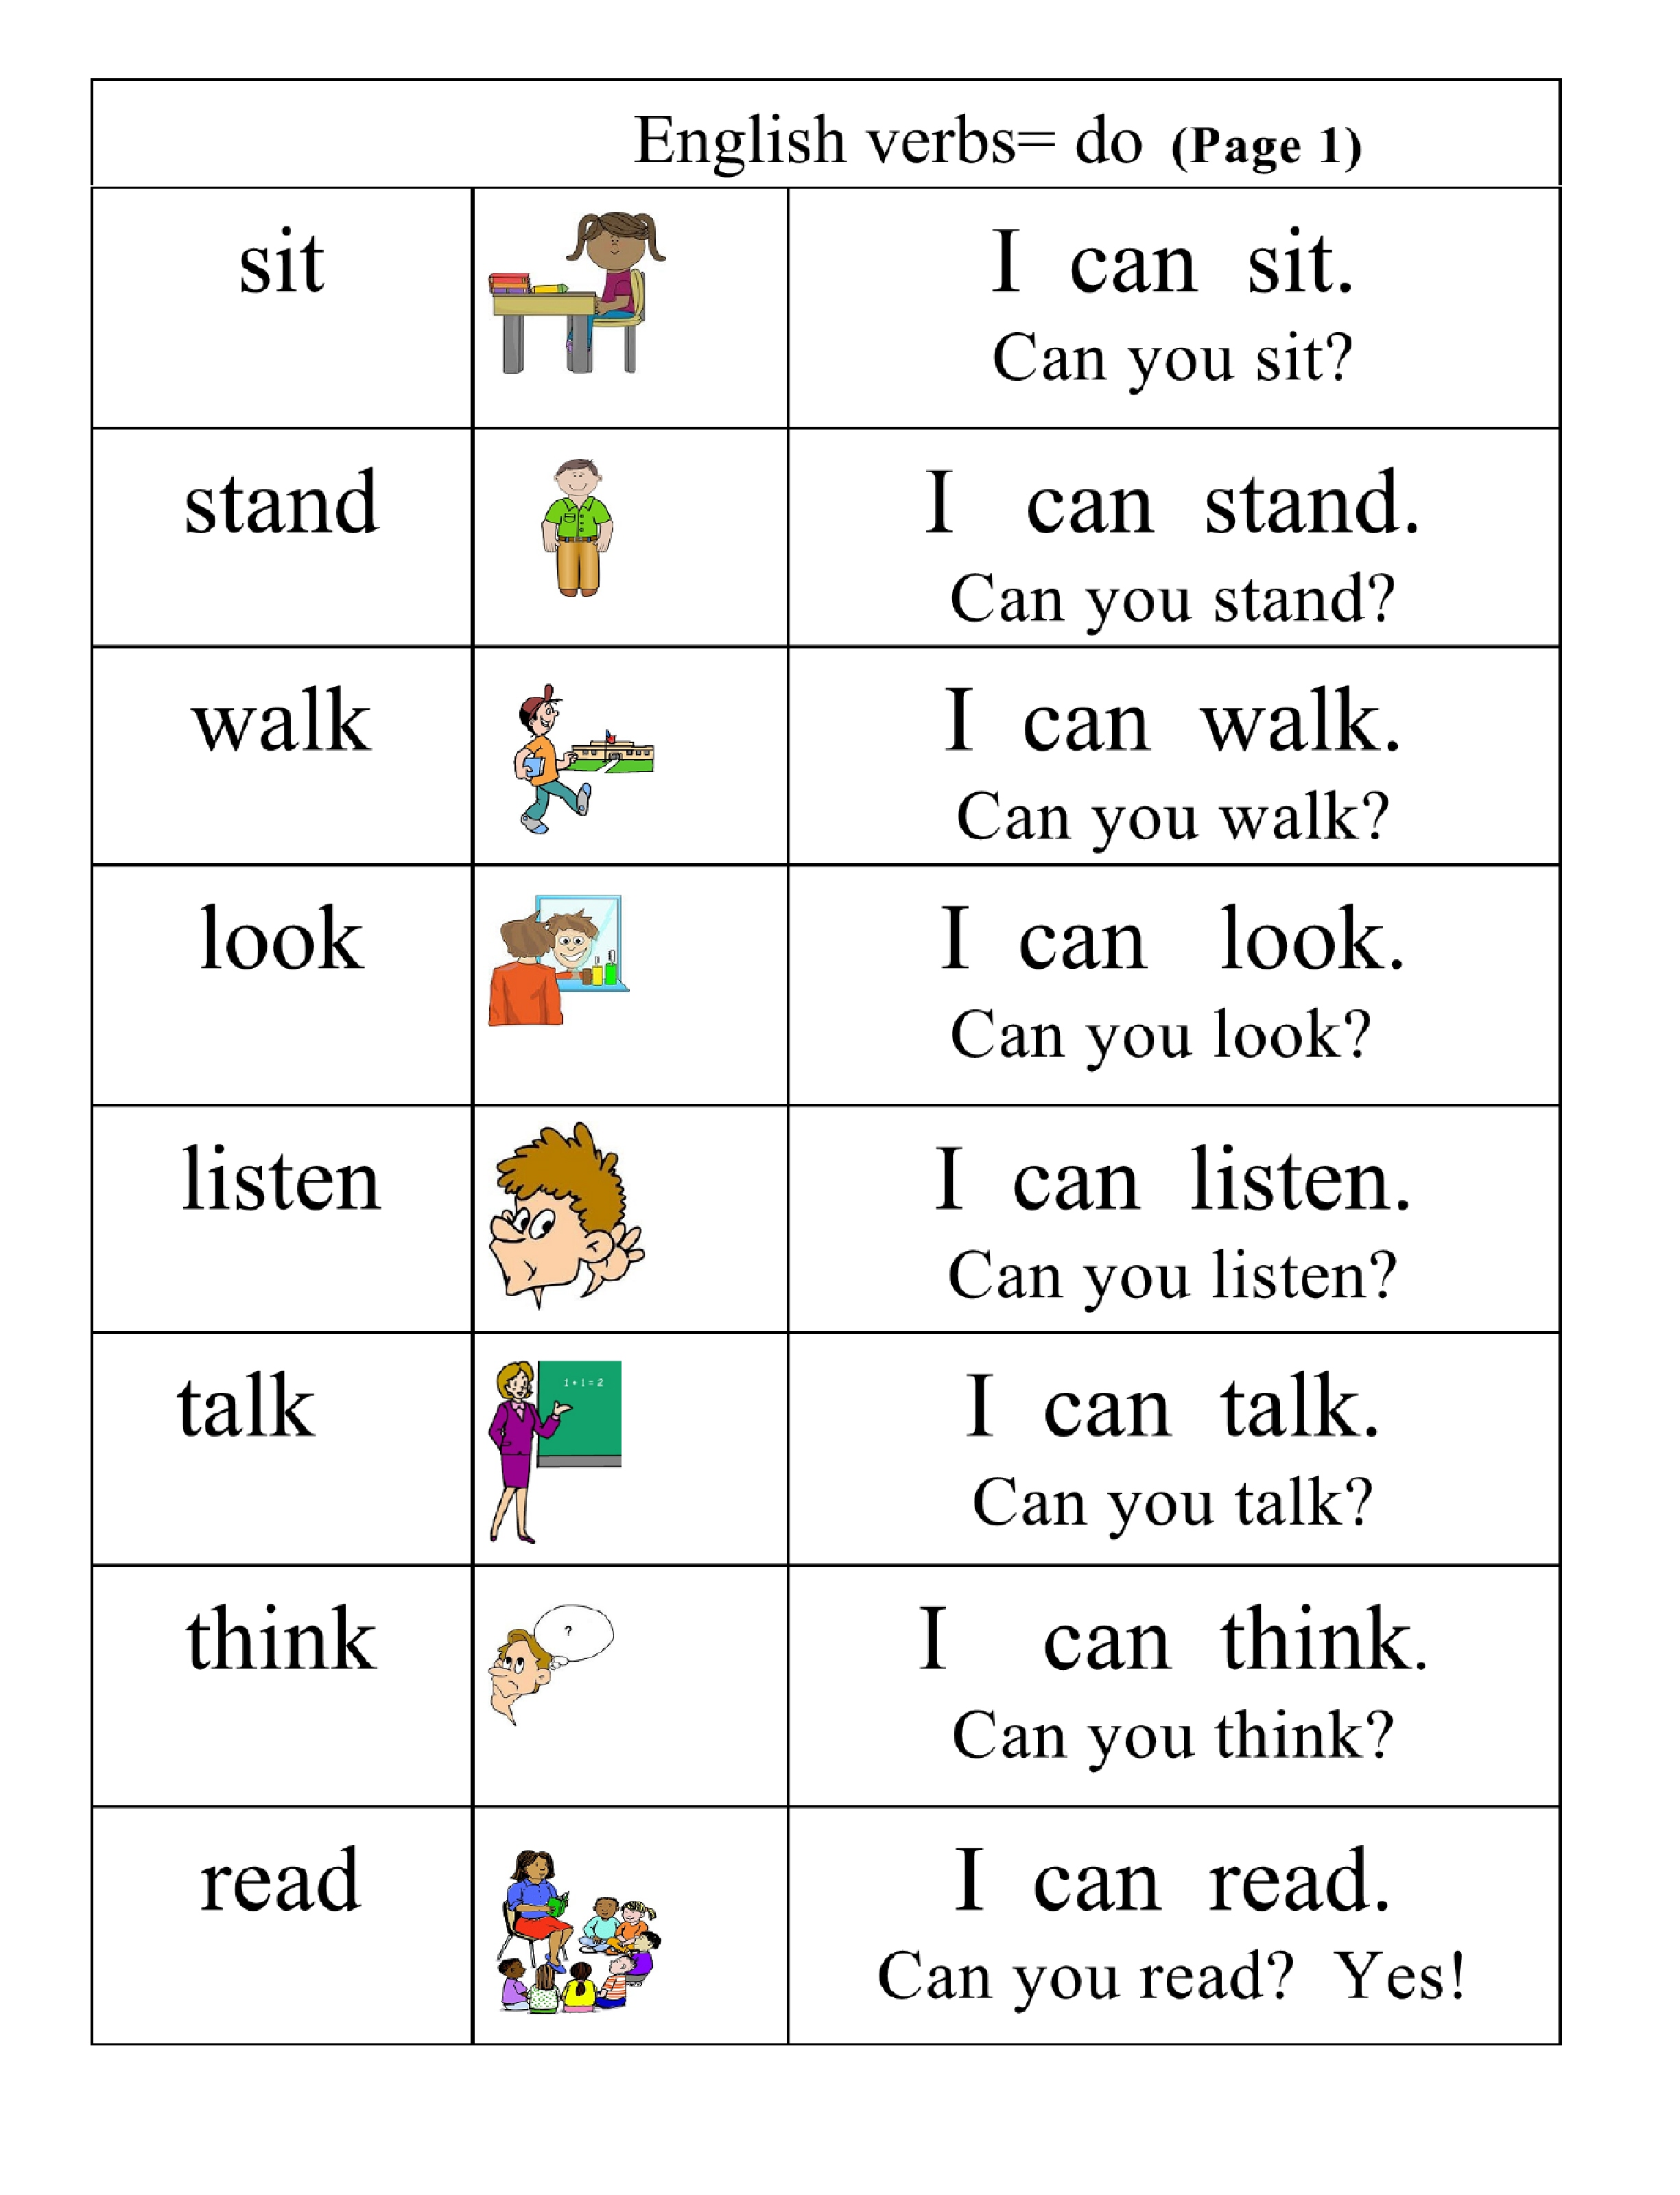 Writing future tense of verb worksheet turtle diary - Very Basic Verbs Group 1 Pictures Words Simple Sentences Page